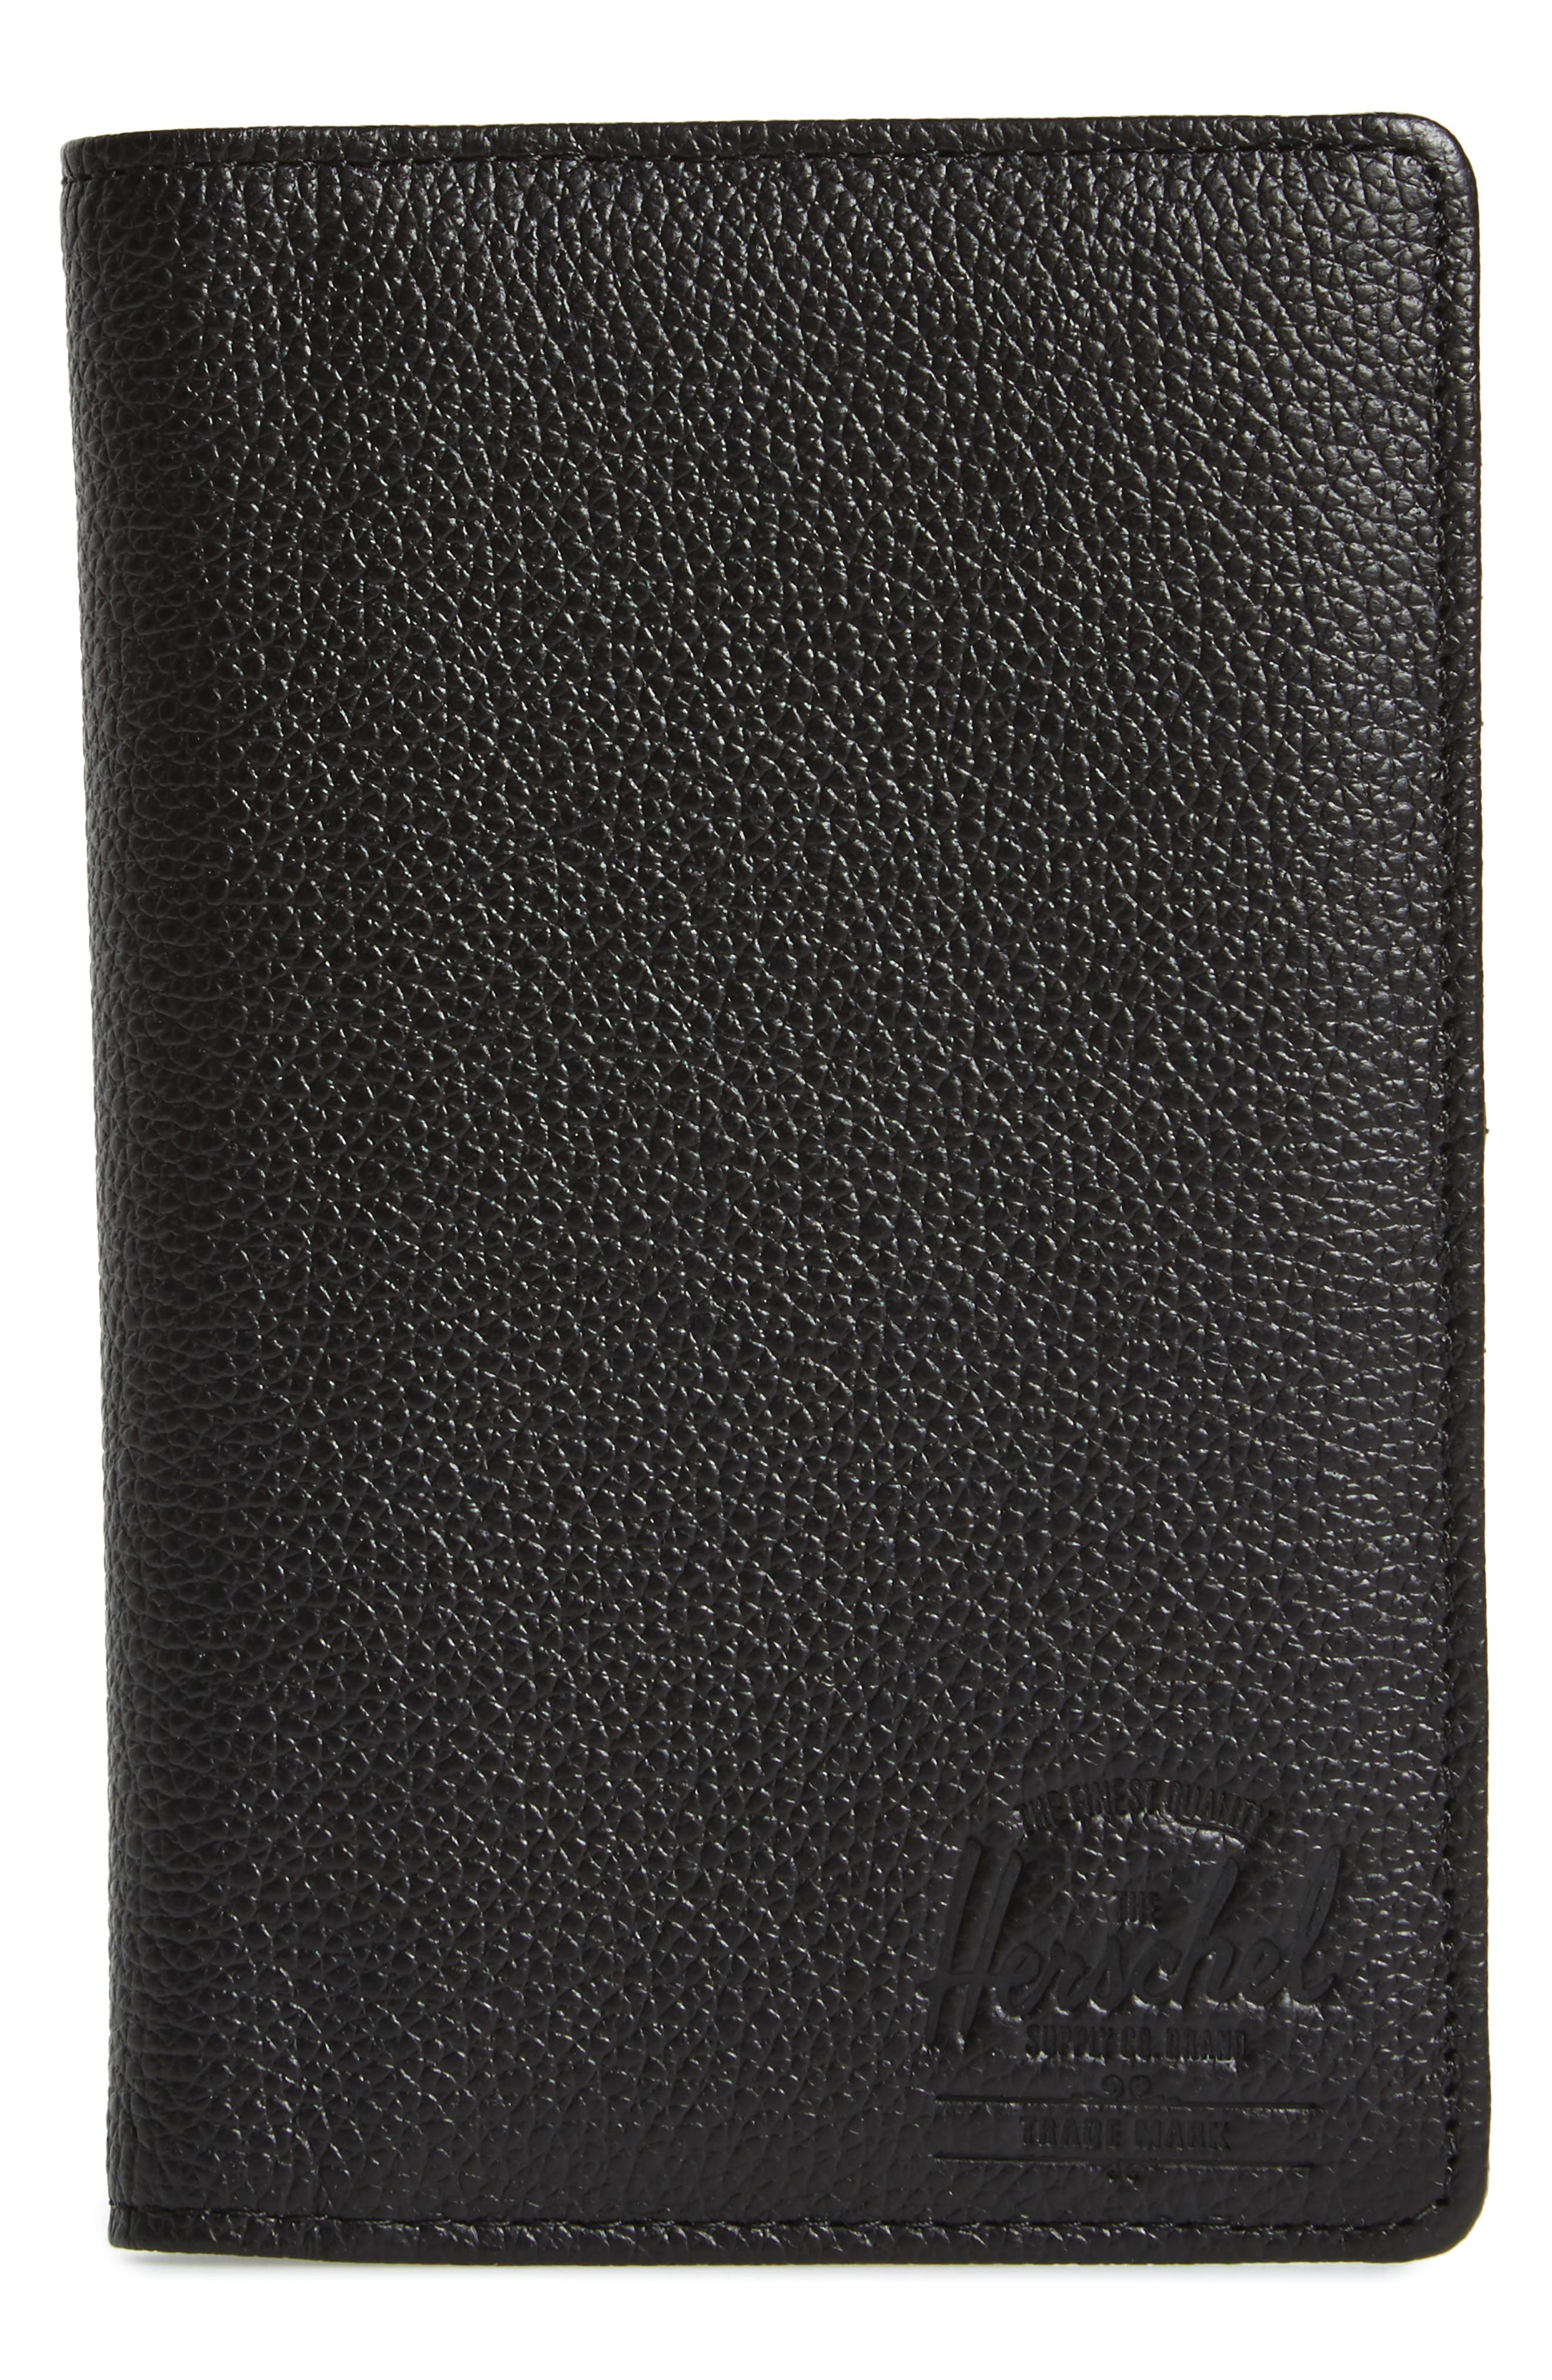 Tile Search Slim Vertical Leather Wallet,                             Main thumbnail 1, color,                             BLACK PEBBLED LEATHER